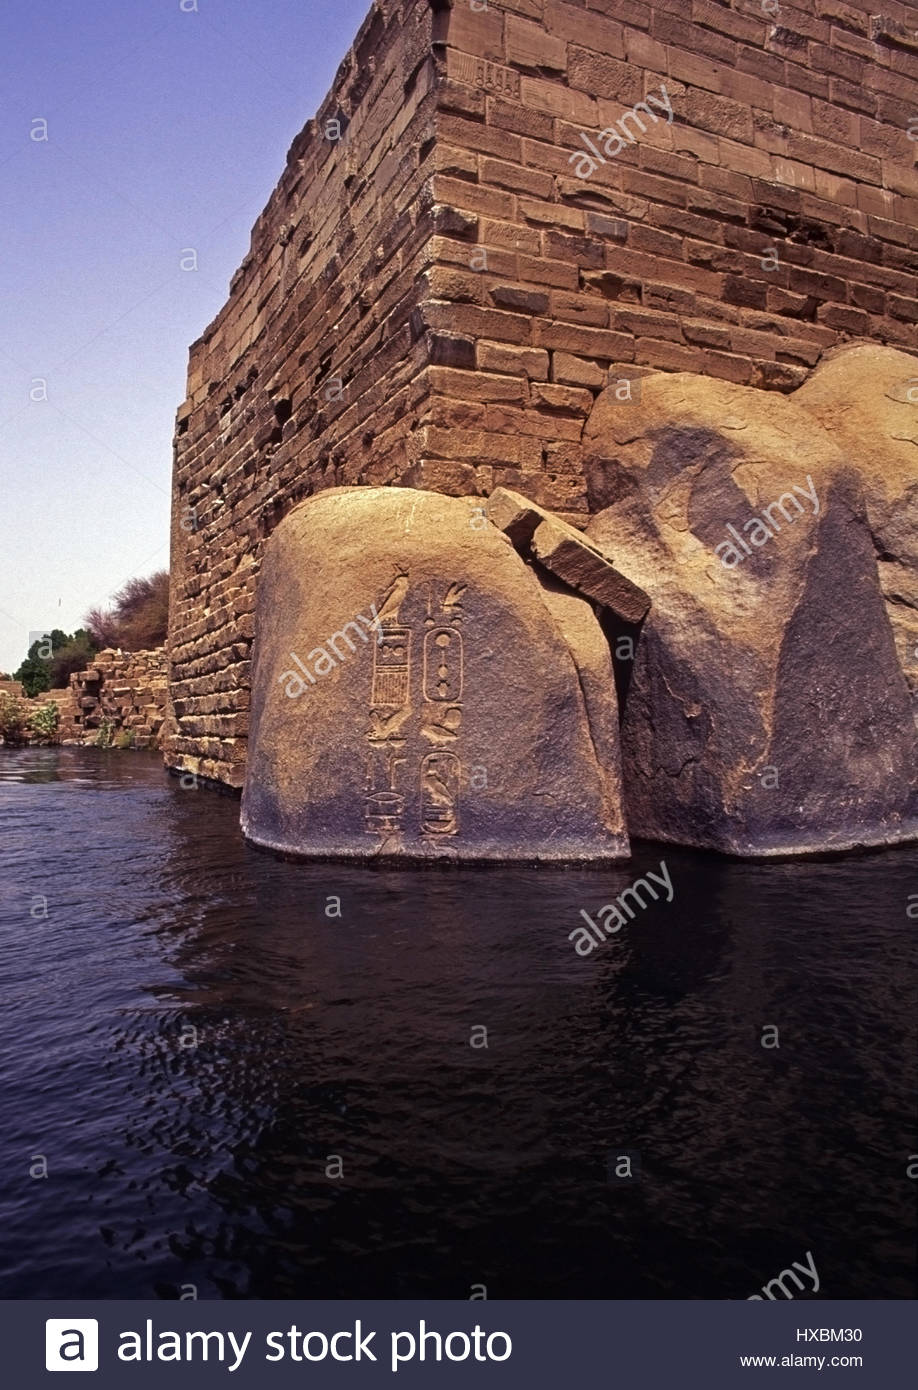 Nilometer of Satet Aswan, Elephantine Island Aswan Egypt Nilometer boulders carvings ...